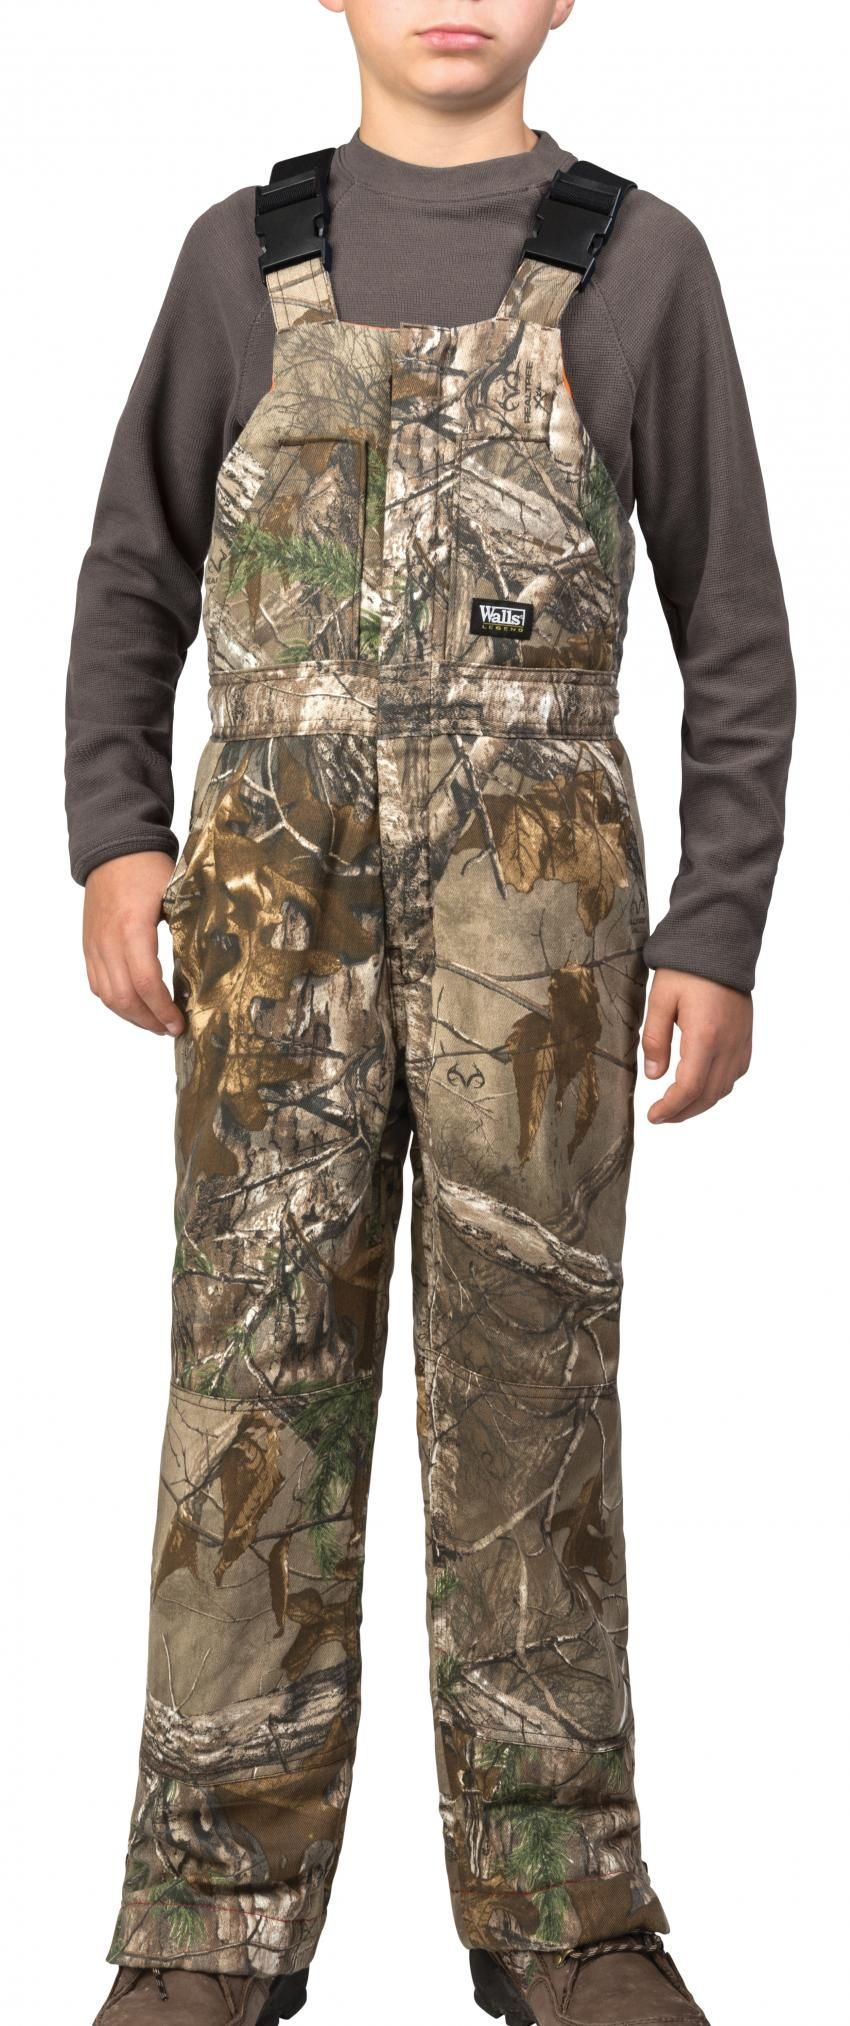 new realtree youth hunting apparel in 2016 wall realtree on walls hunting clothing insulated id=29451